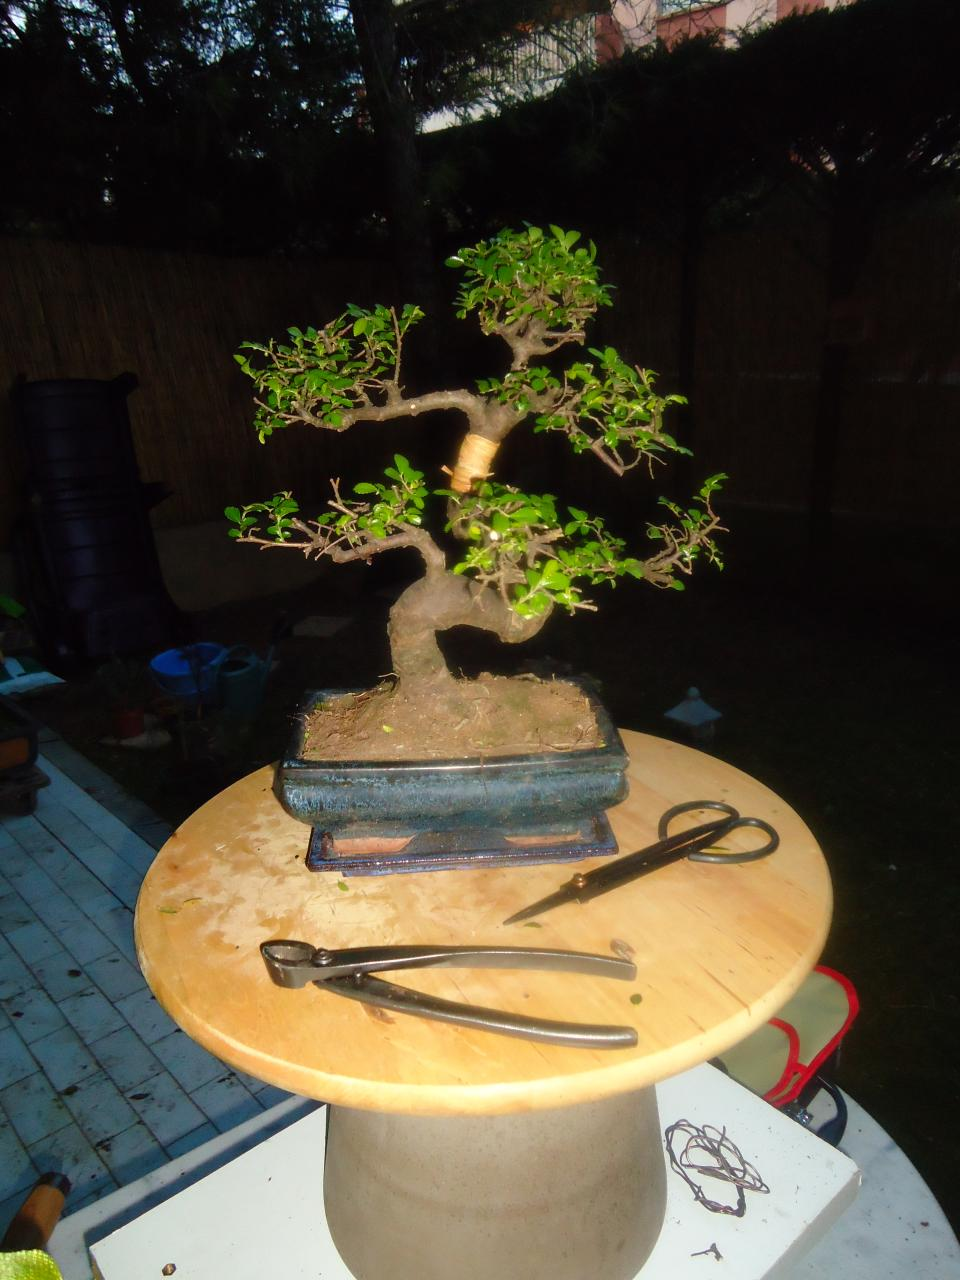 Bonsa cr ation orme de chine - Orme de chine bonsai ...